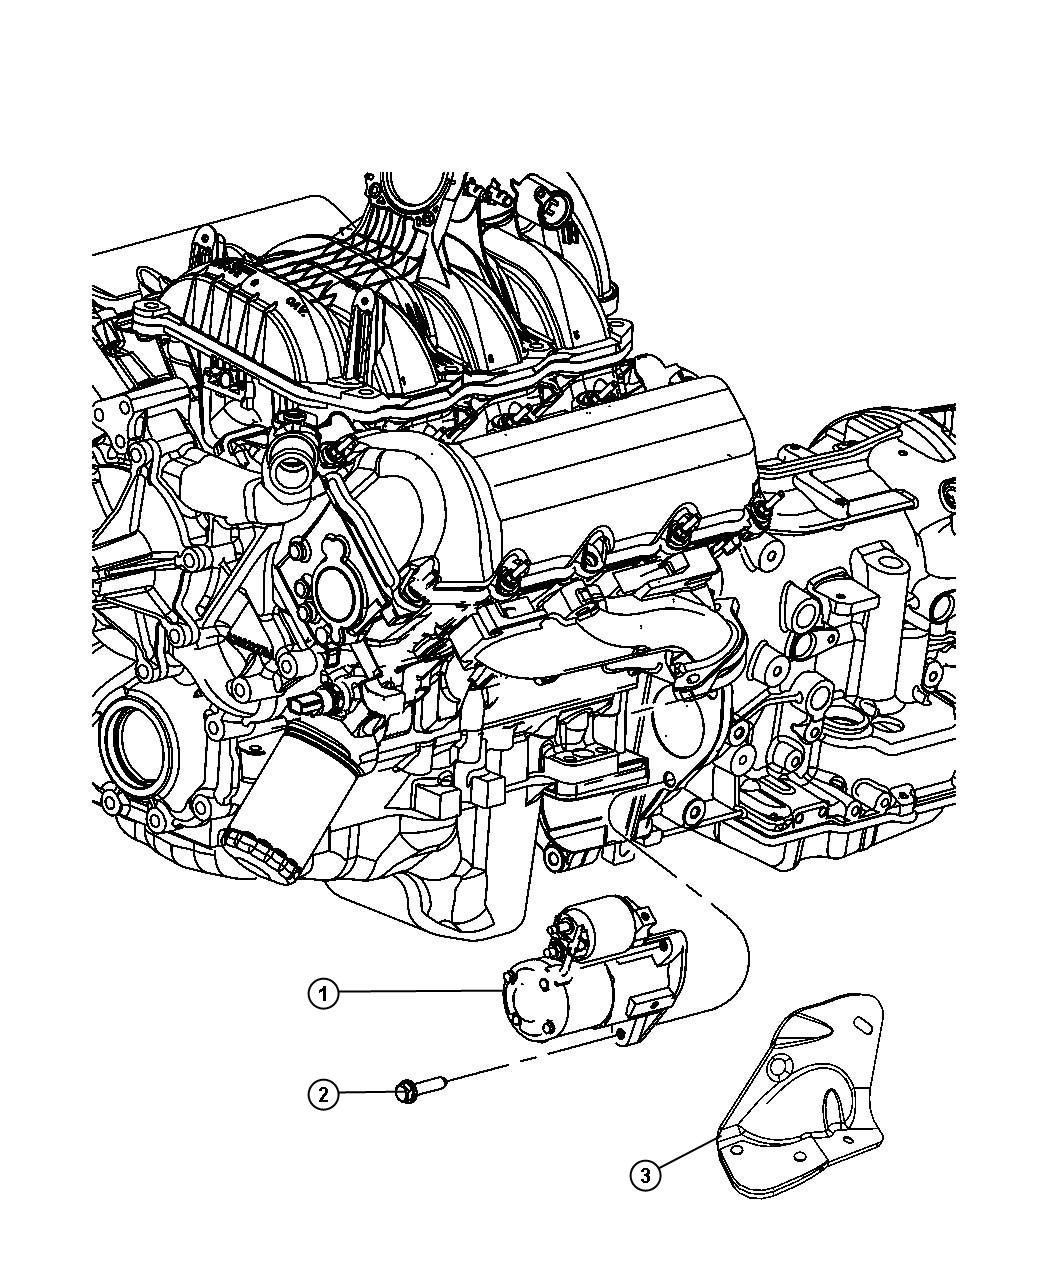 2009 Jeep Liberty Starter. Engine. Remanufactured. After